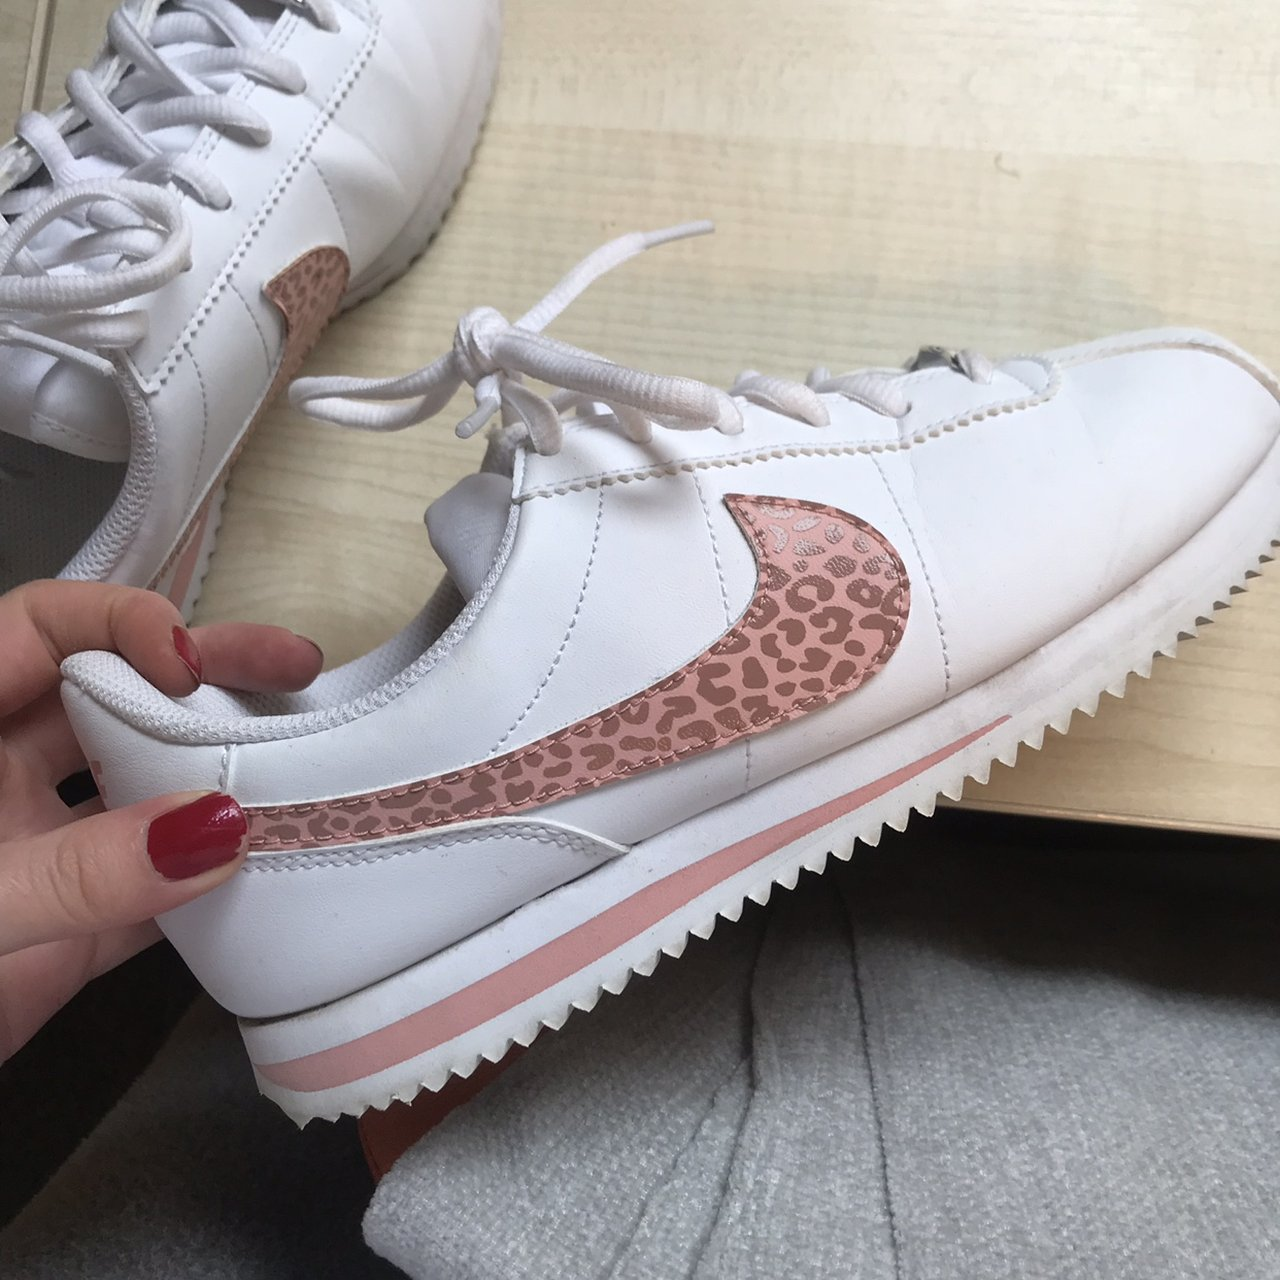 Nike cortez white with pink leopard